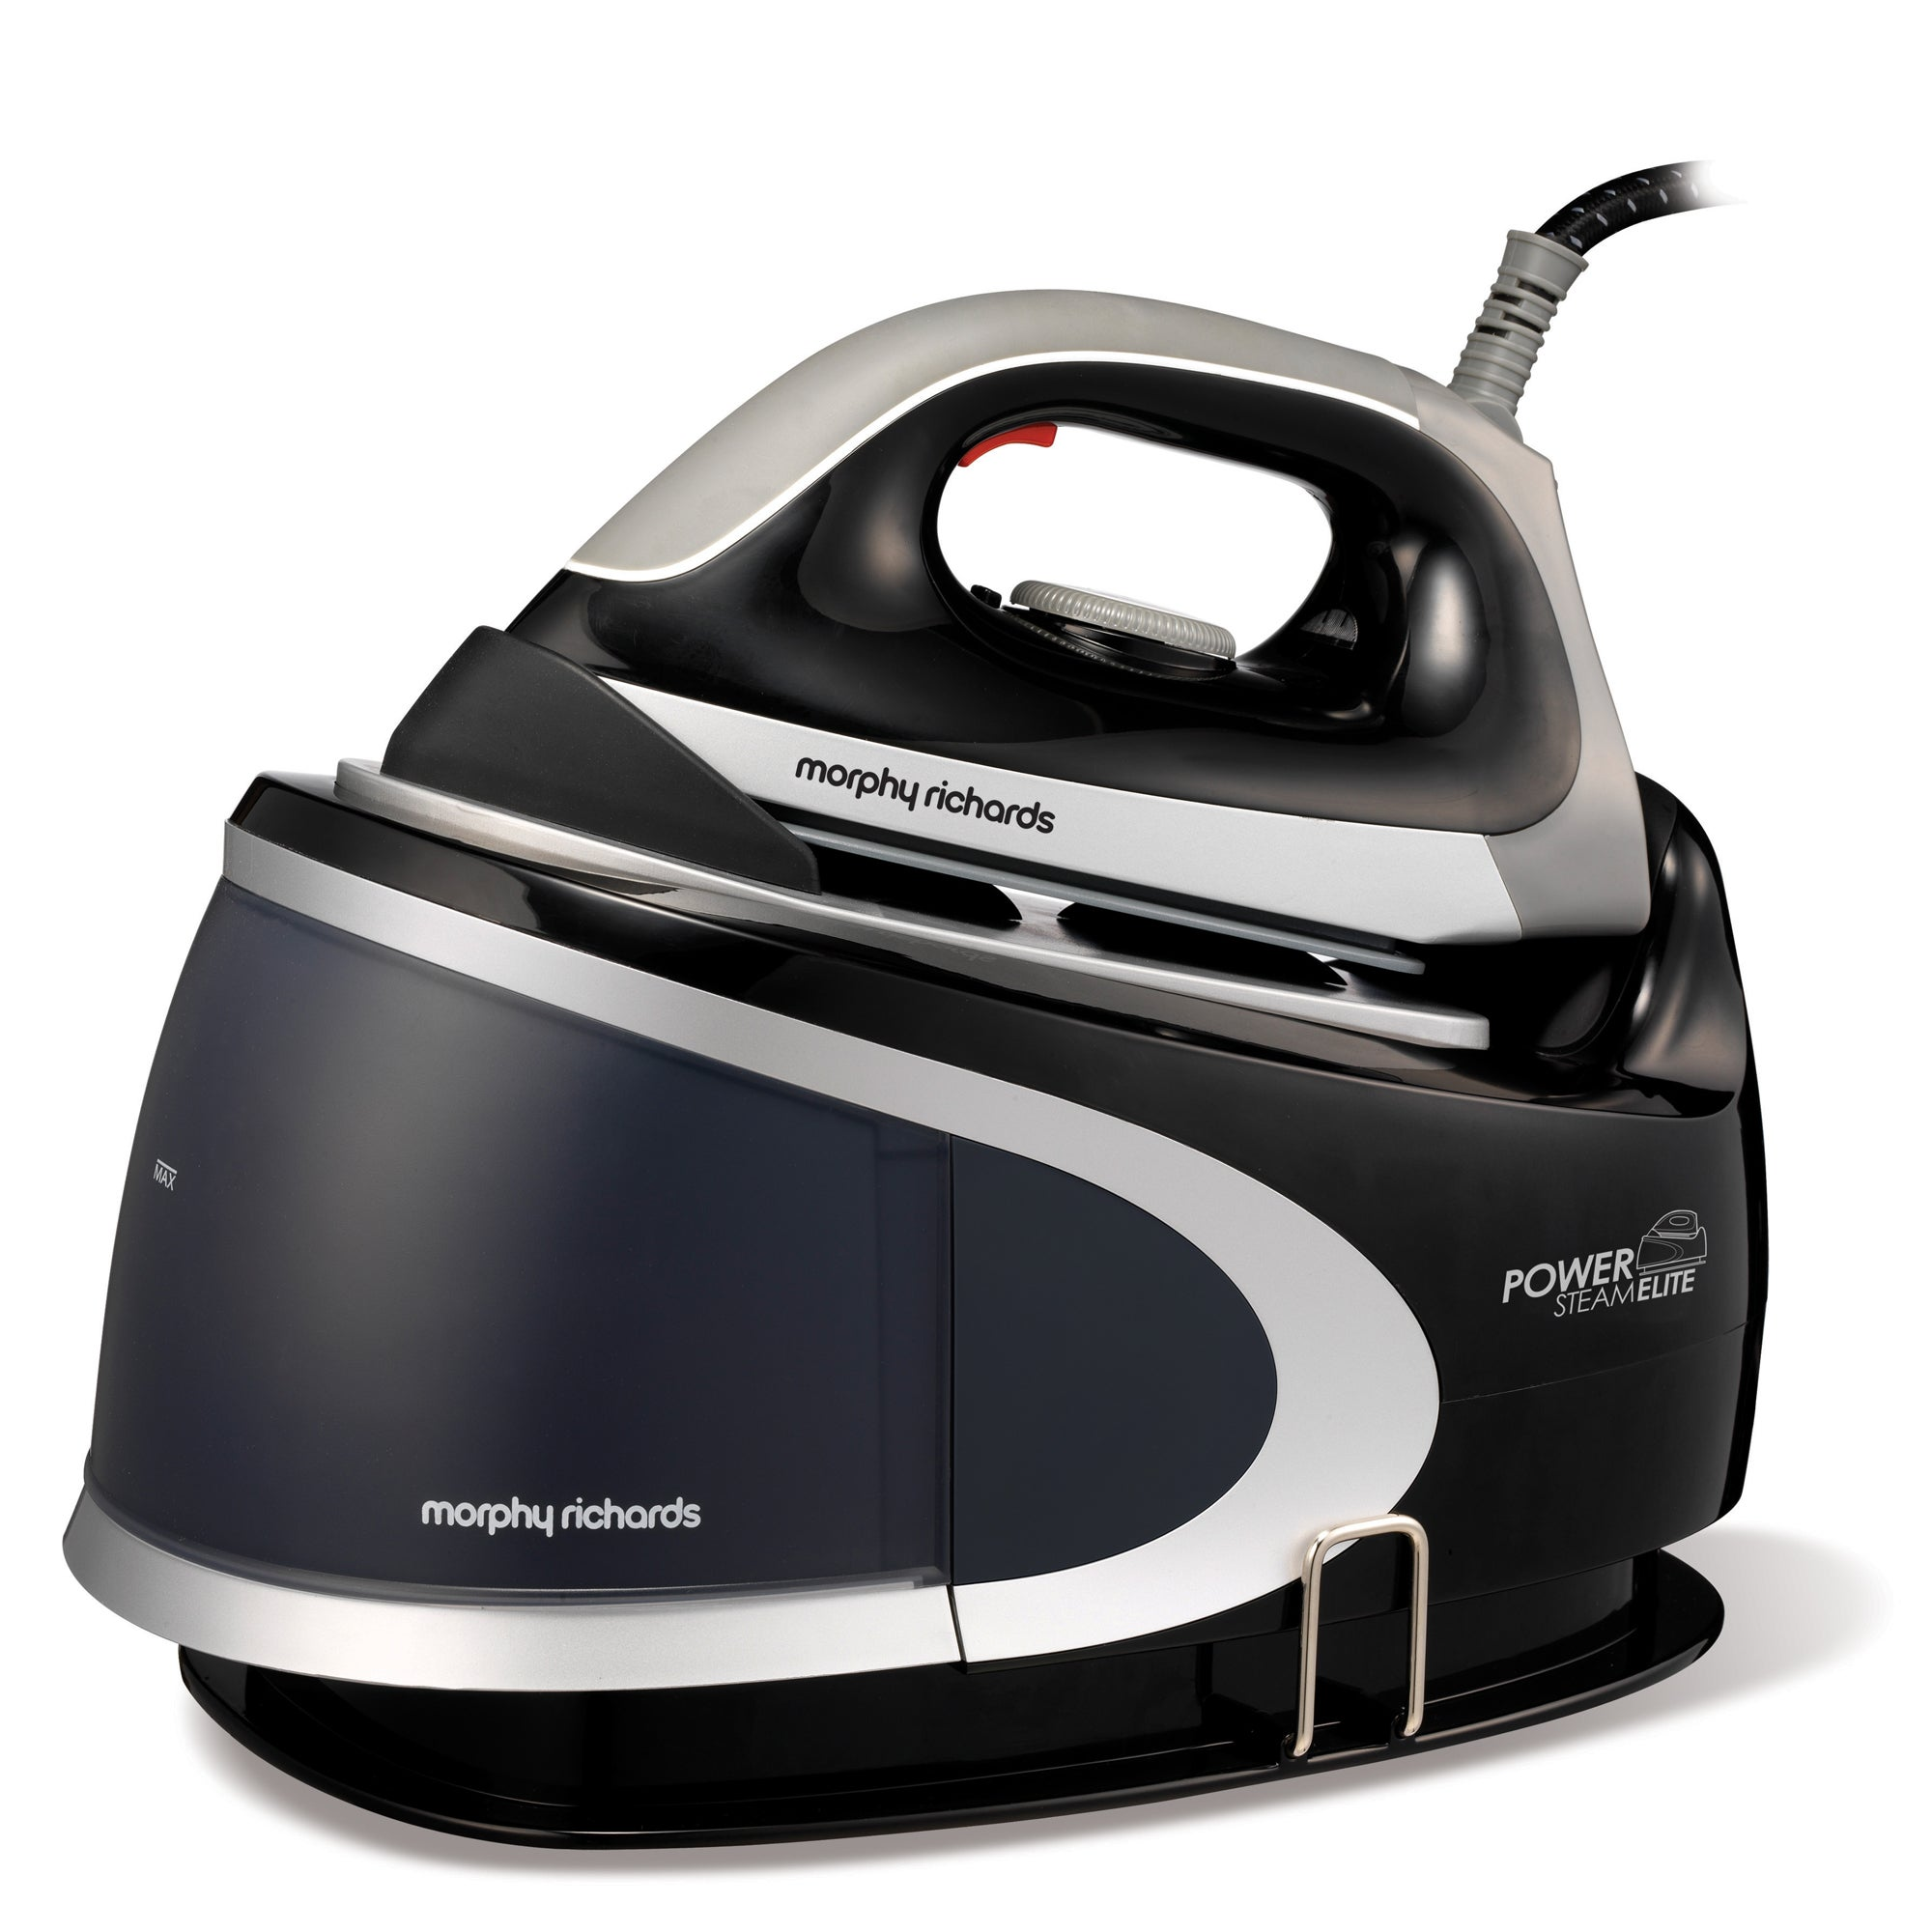 Morphy Richards 42221 2400w Black Power Steam Elite Iron